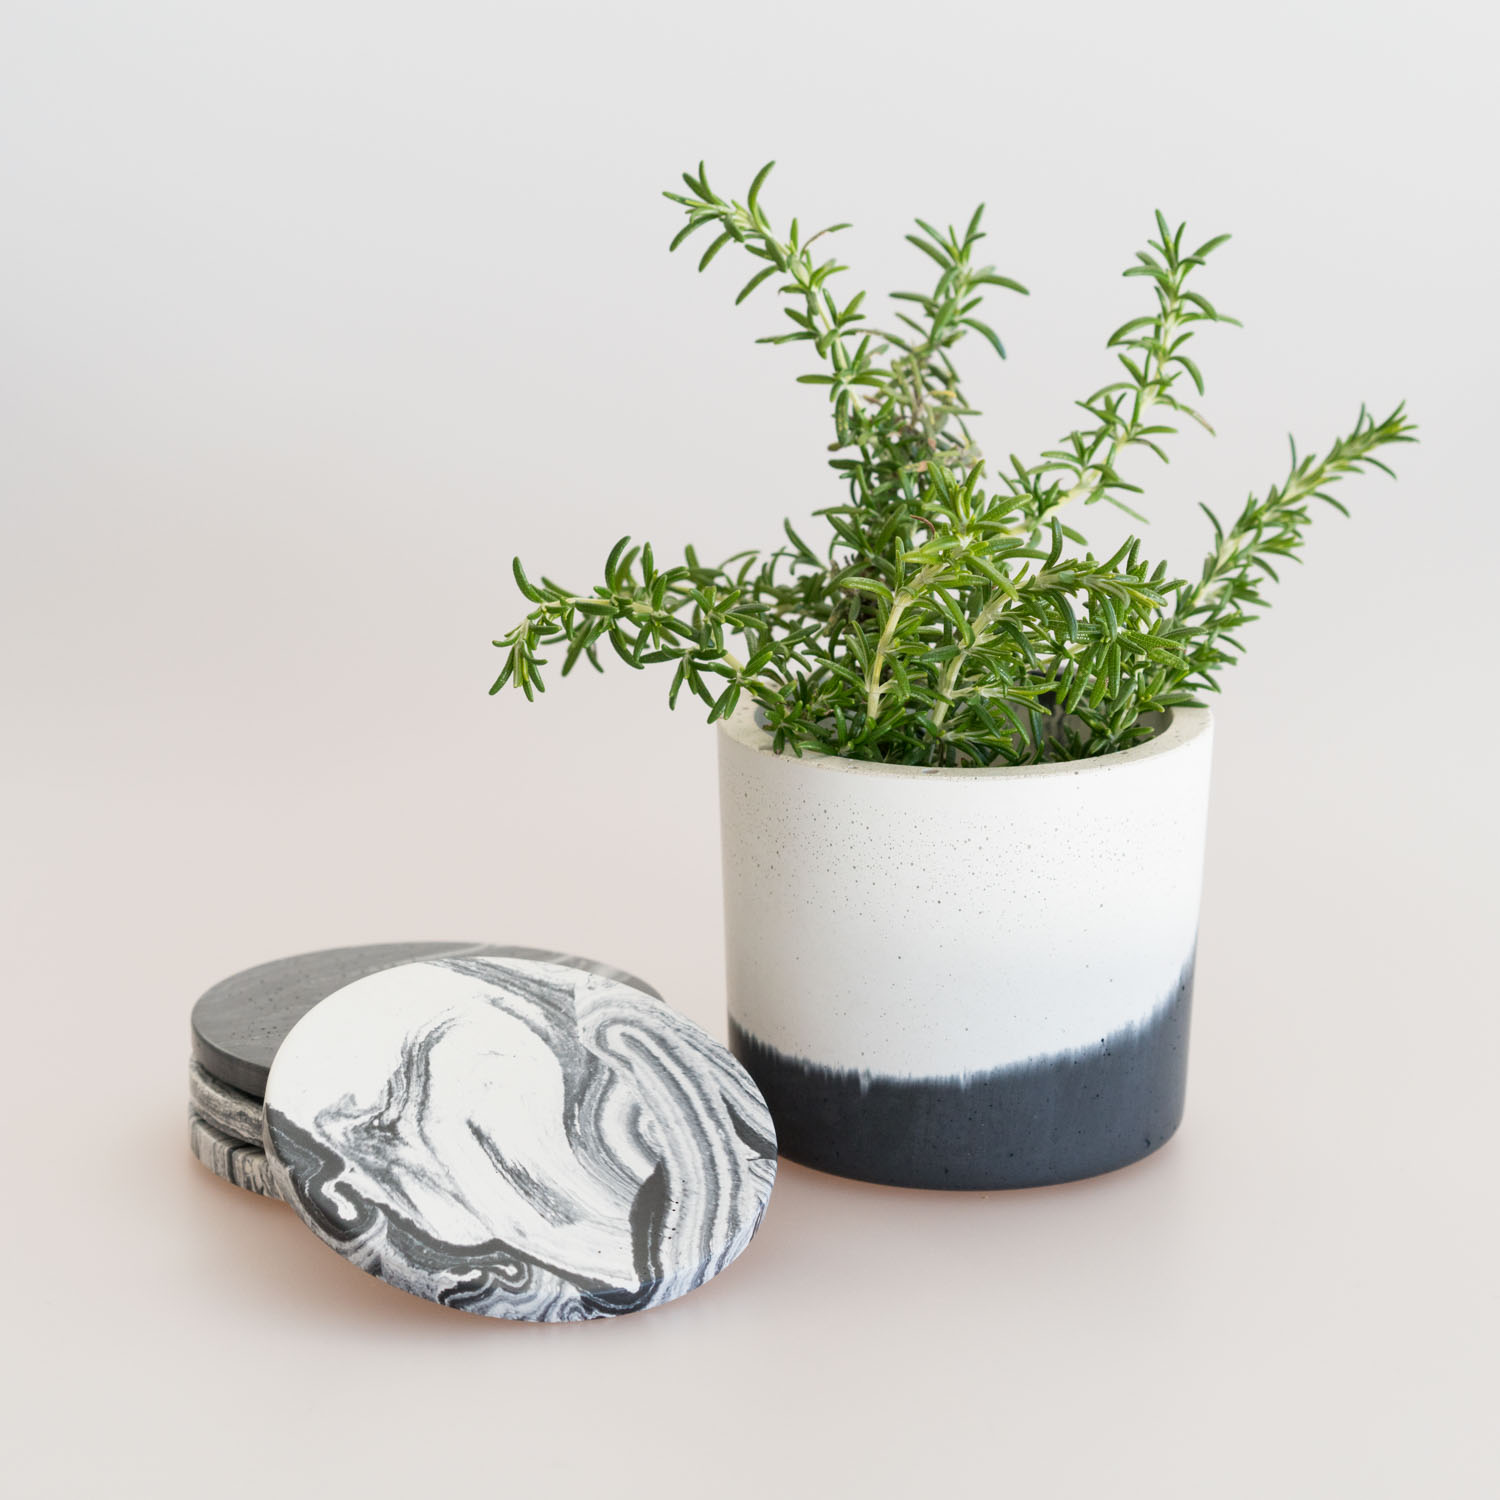 Concrete planter and coasters by FUME